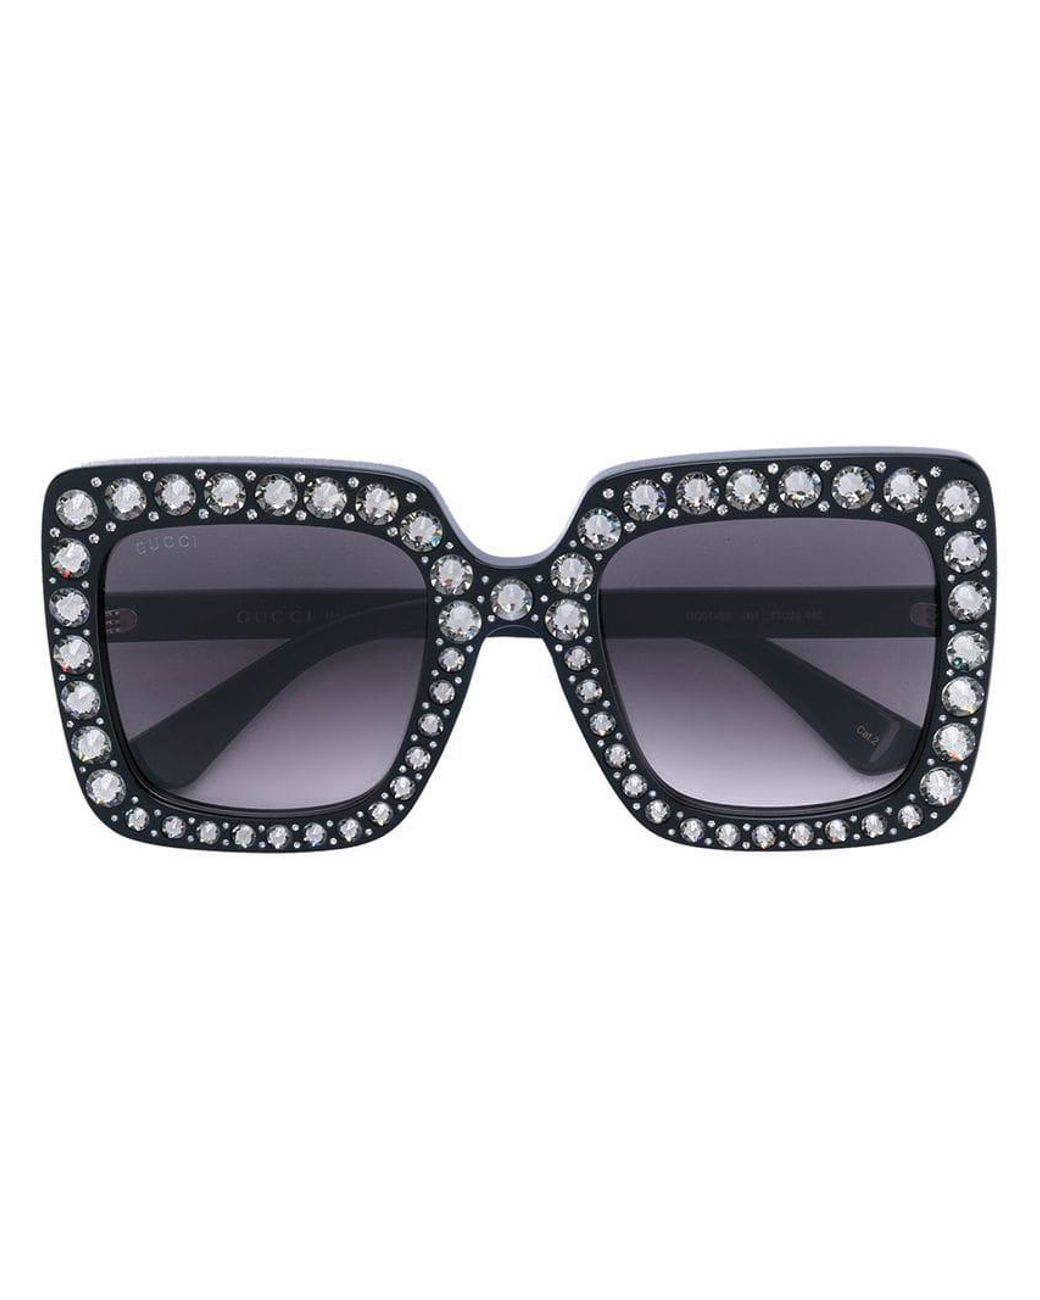 6a38da30861 Lyst - Gucci Oversize Square-frame Sunglasses With Crystals in Black